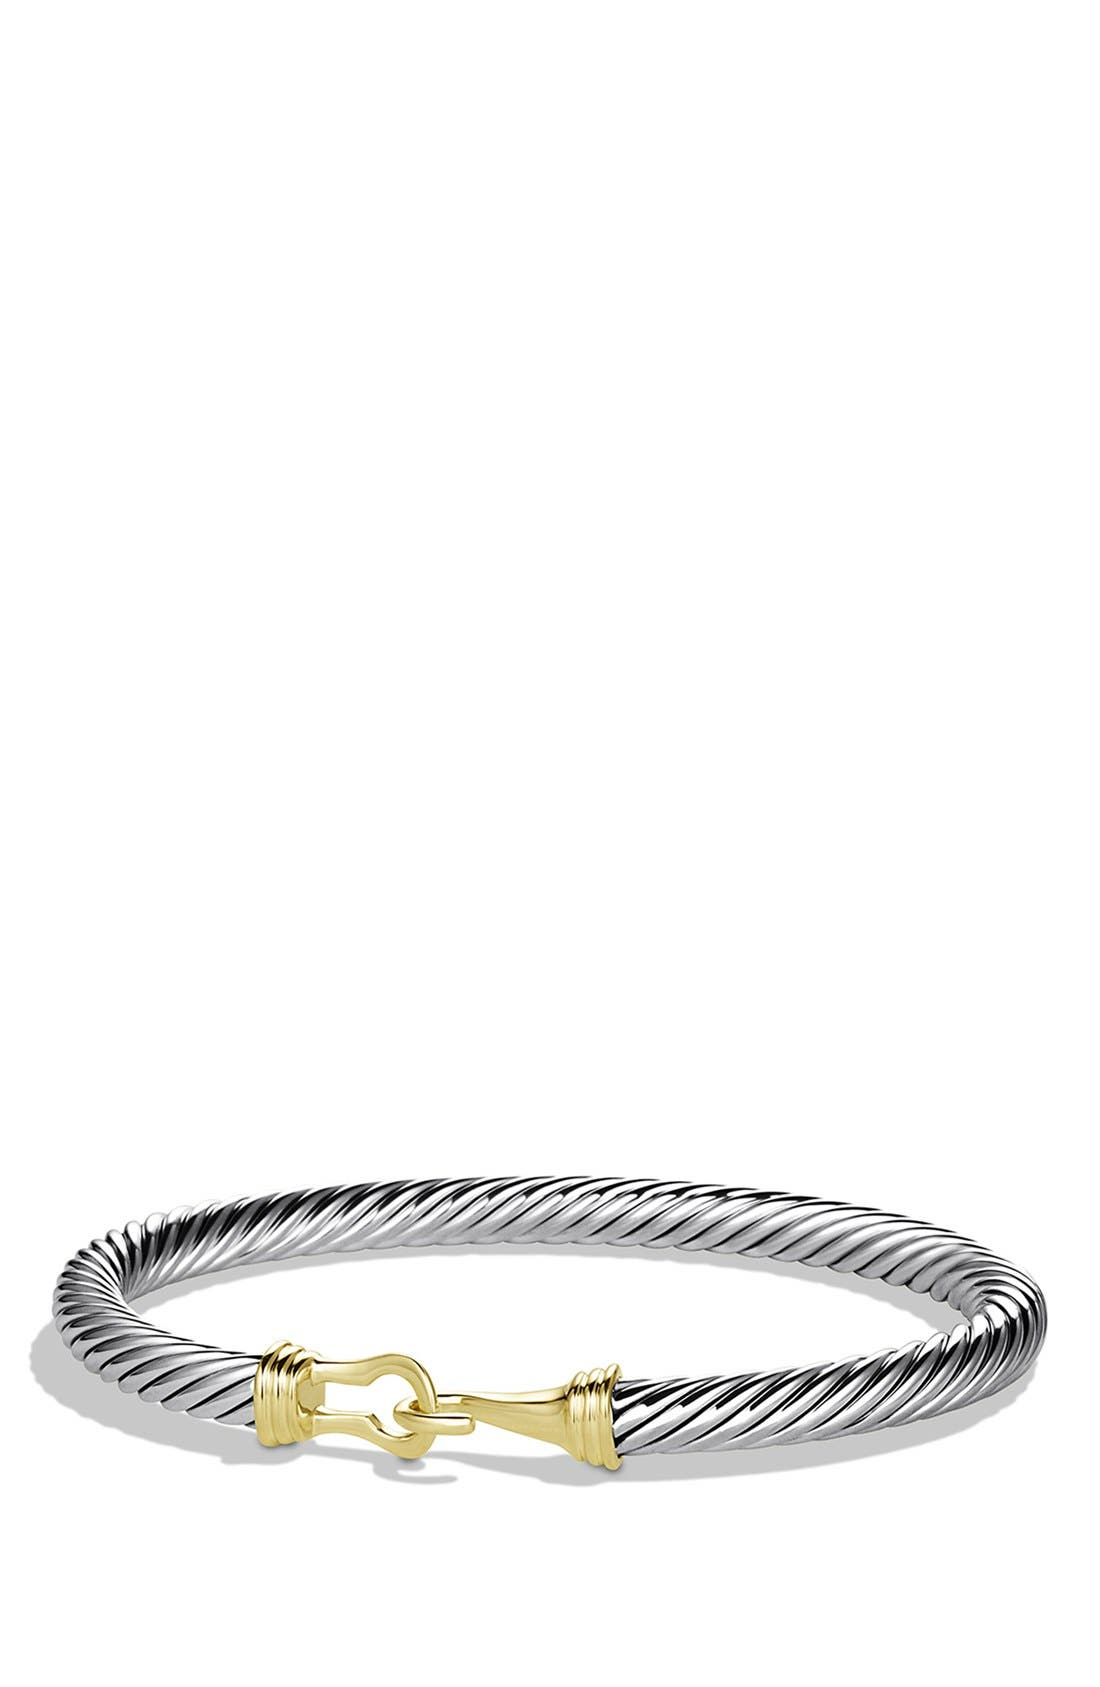 'Cable Buckle' Bracelet with Gold,                             Main thumbnail 1, color,                             040